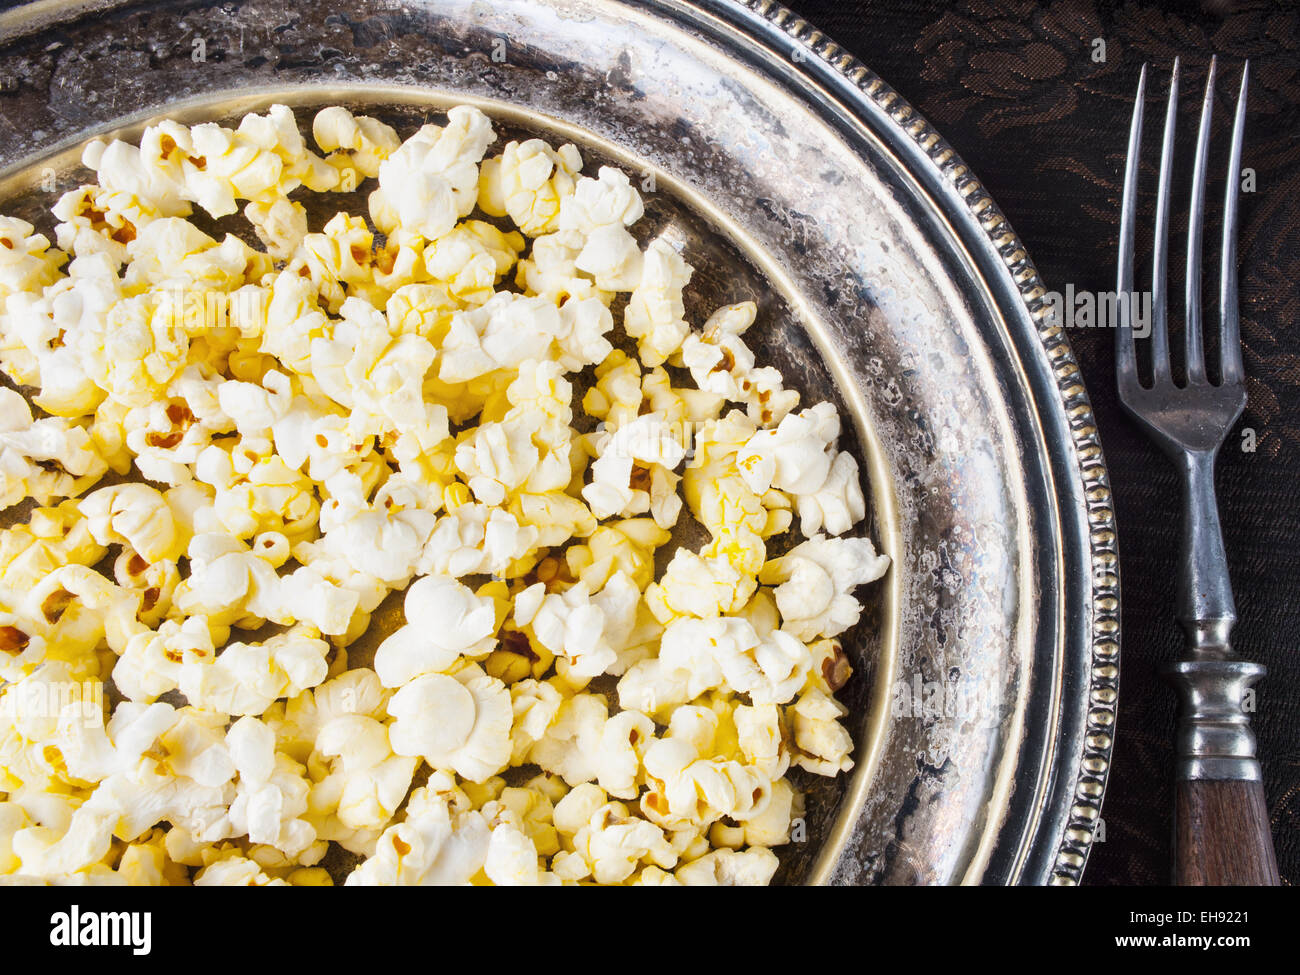 Healthy Buttered Popcorn with Salt in a Plate Stock Photo